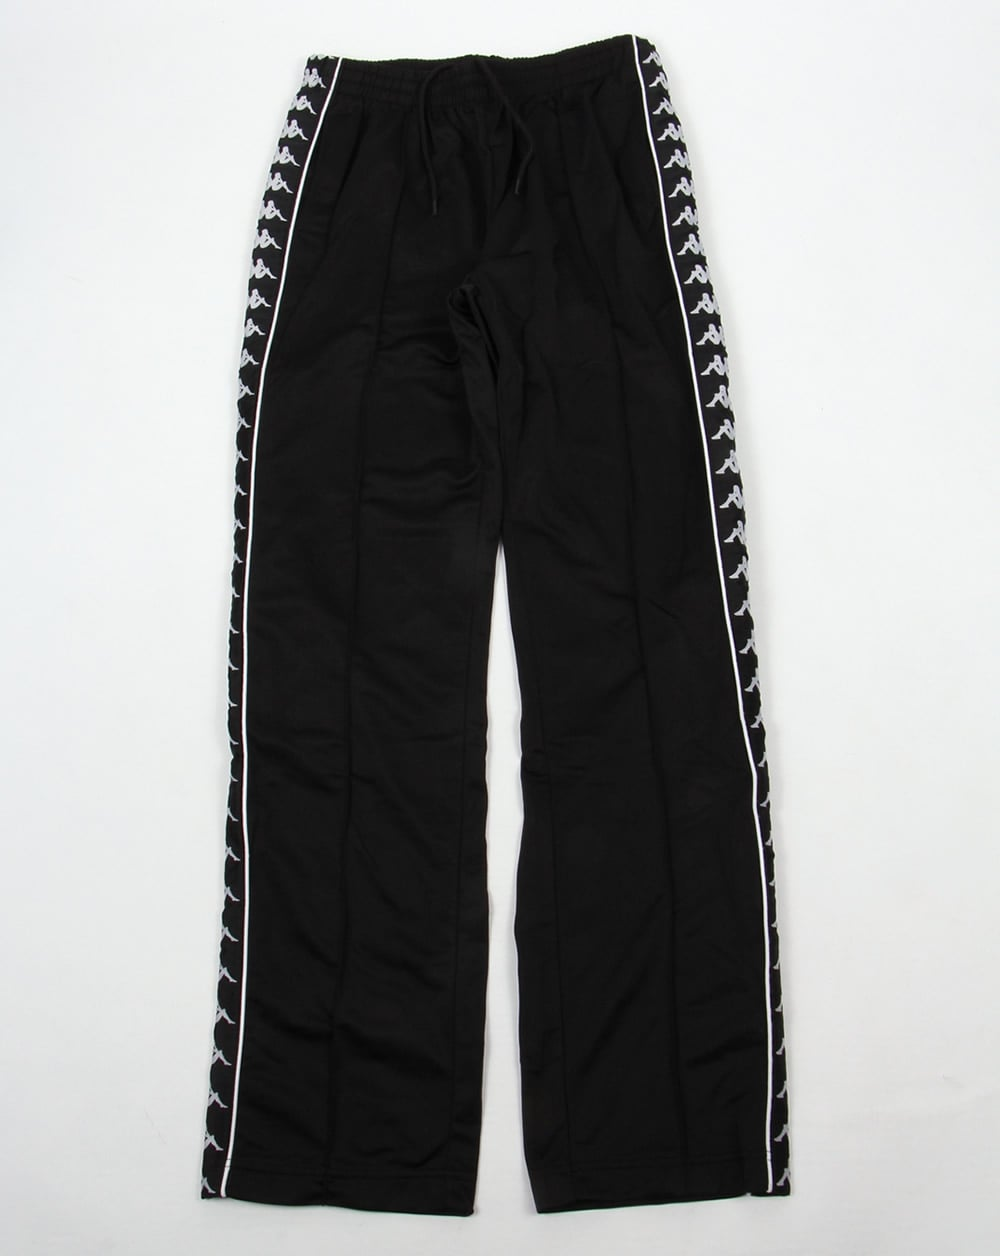 robe di kappa banda track bottoms black kappa from 80s casual classics uk. Black Bedroom Furniture Sets. Home Design Ideas